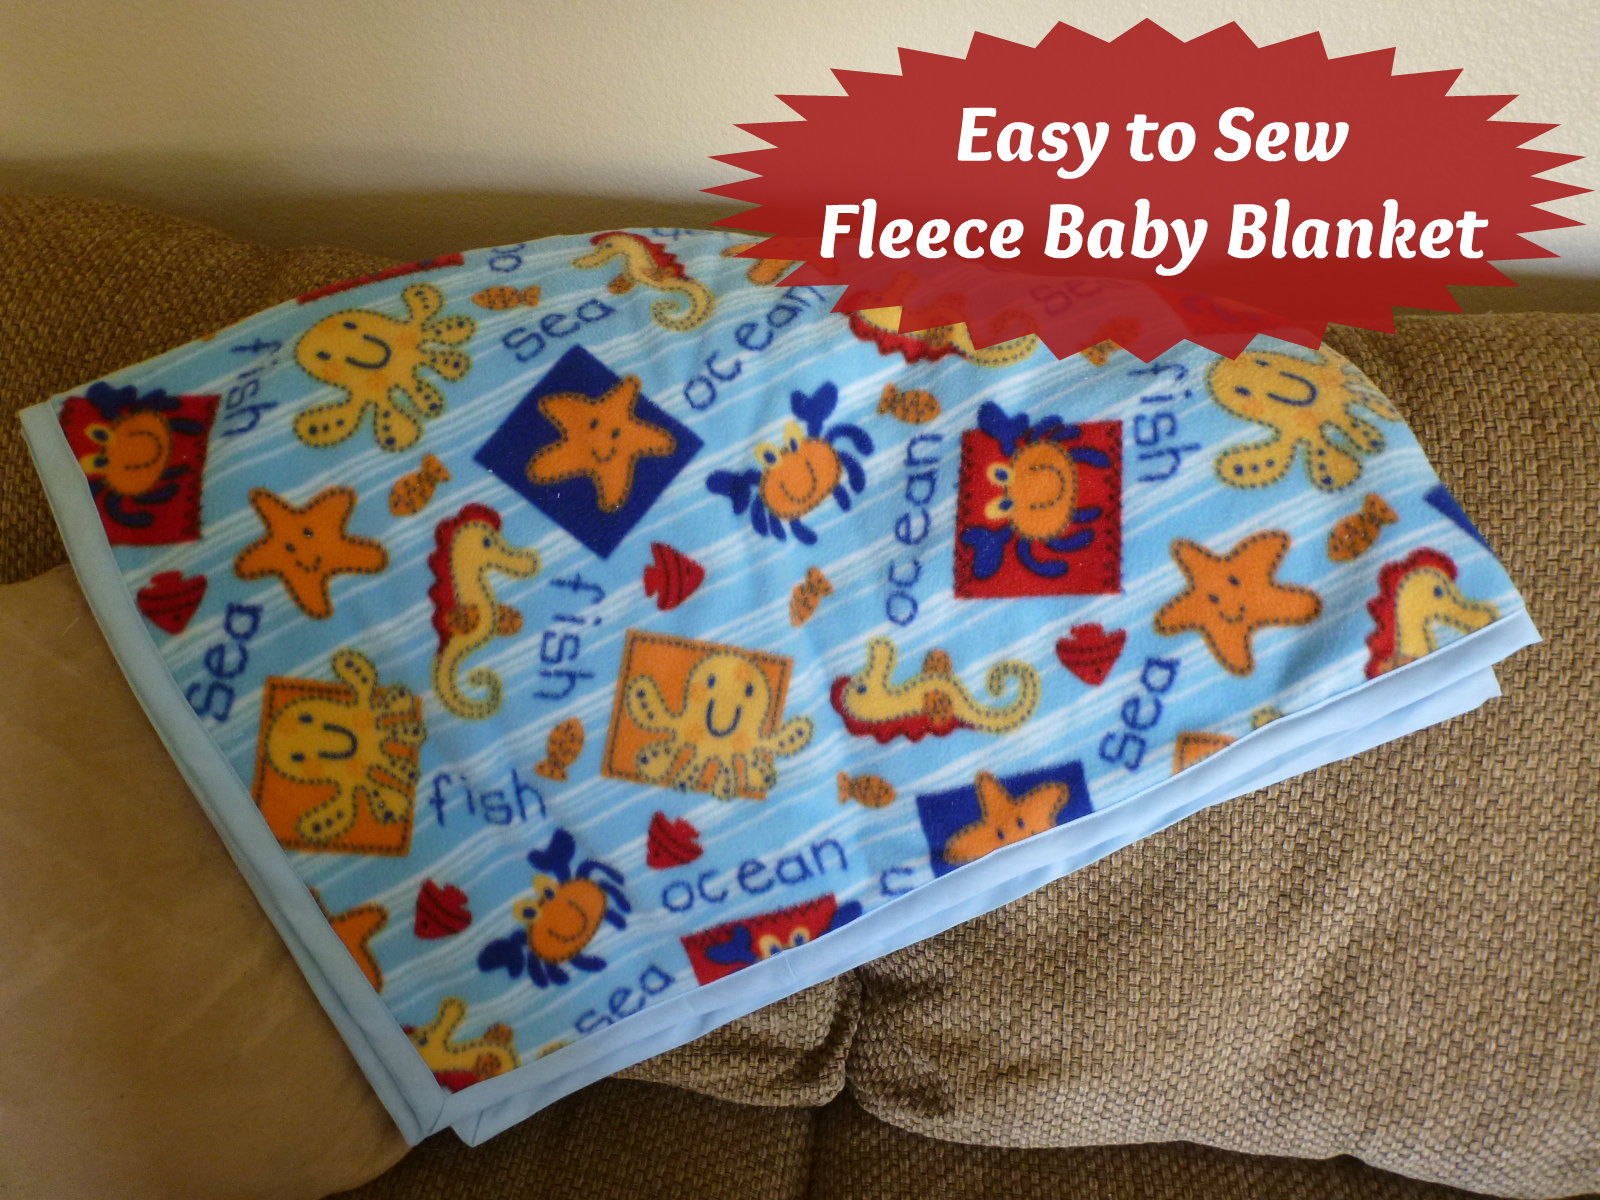 How To Make A Baby Blanket Clearwater Cottage Easy To Sew Fleece Baby Blanket